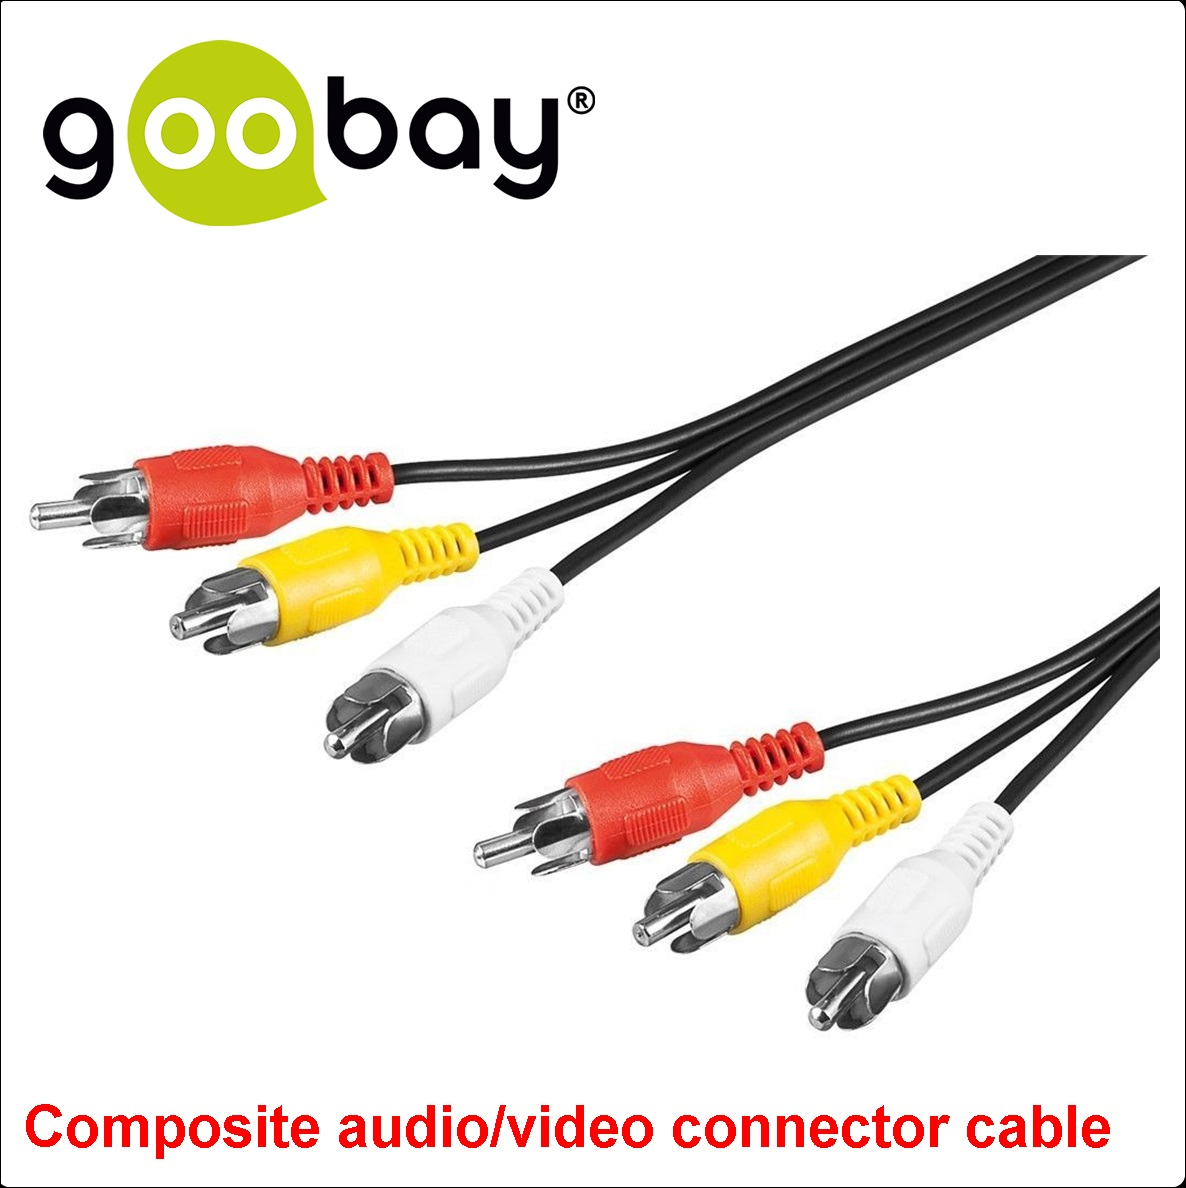 3 RCA male to  3 RCA male 2.0m GOOBAY 50381